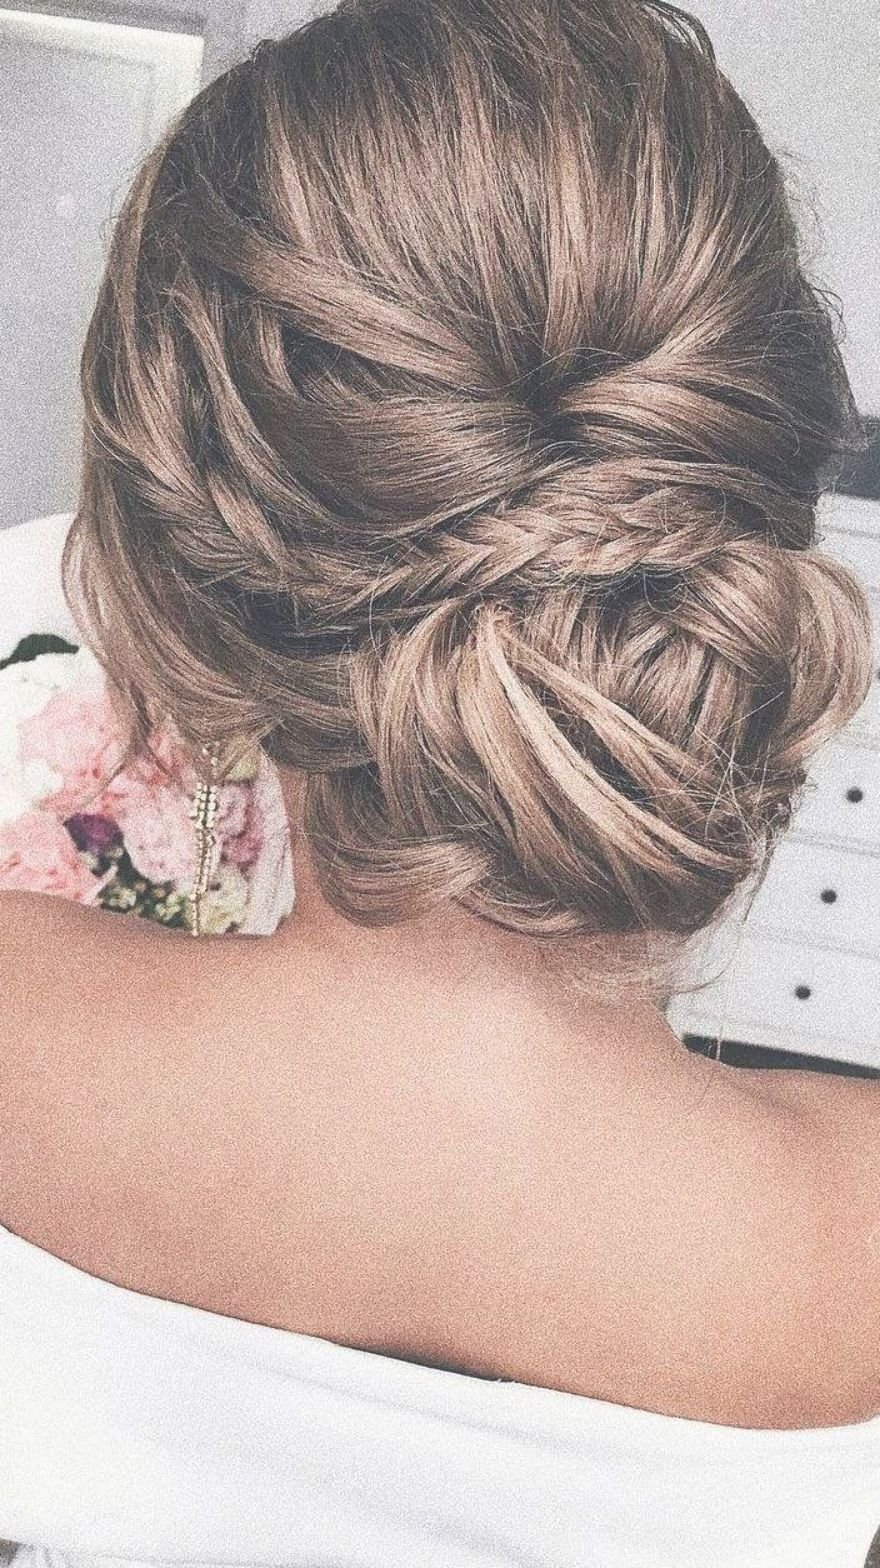 Unique Updo Hairstyle Simple Updo Low Bun Wedding Hair Fishtail Braid Updo Messy Updo Bridal Hairstyle Updo H Low Bun Wedding Hair Hair Styles Chic Hairstyles